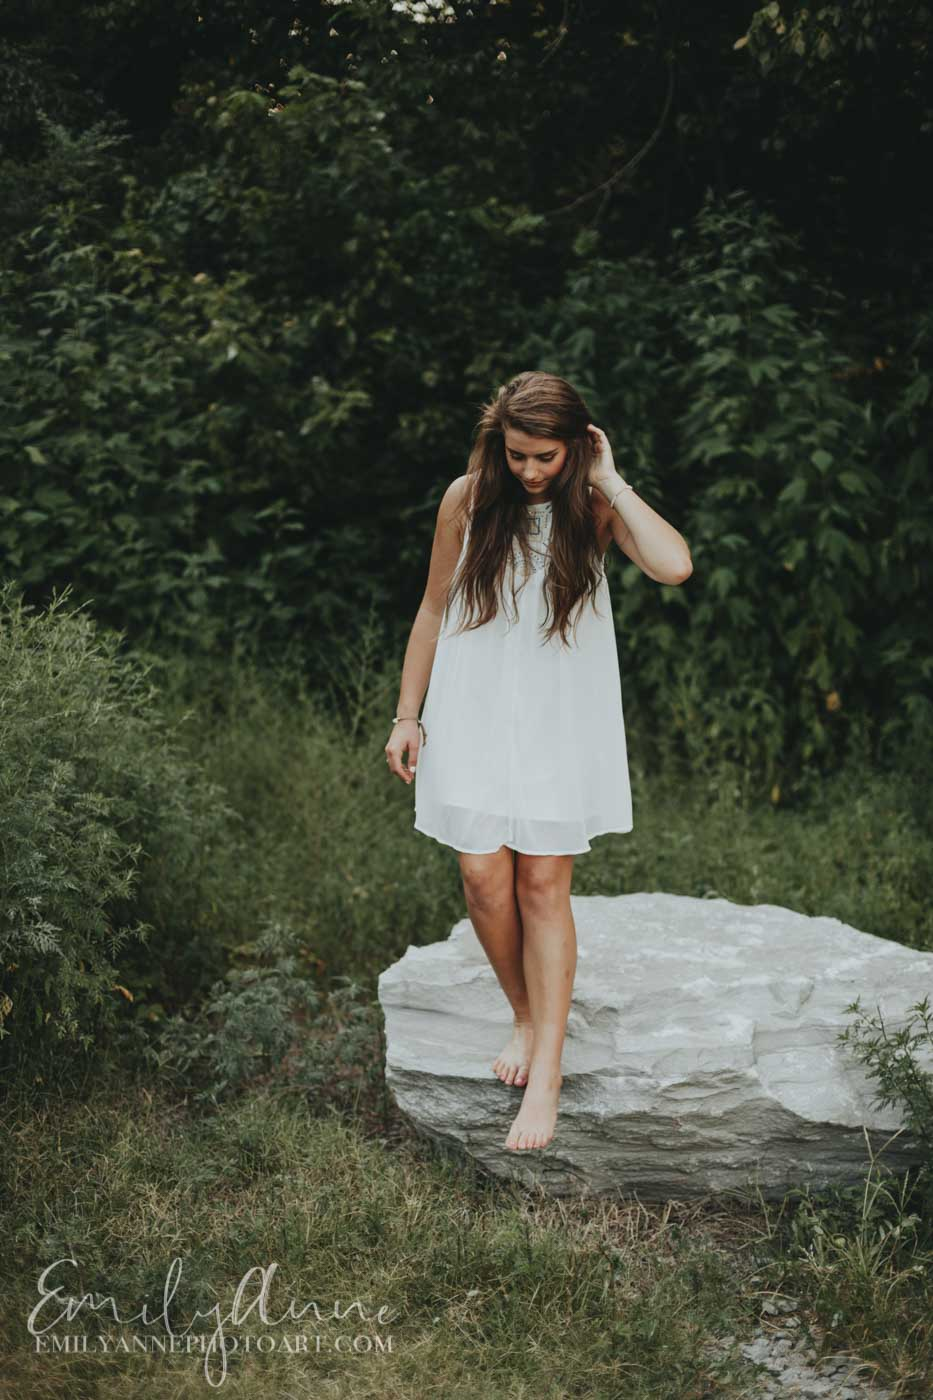 stepping off a rock at Pinkerton park; girl senior portraits all dressed in white Franklin Emily Anne photo art (photography)